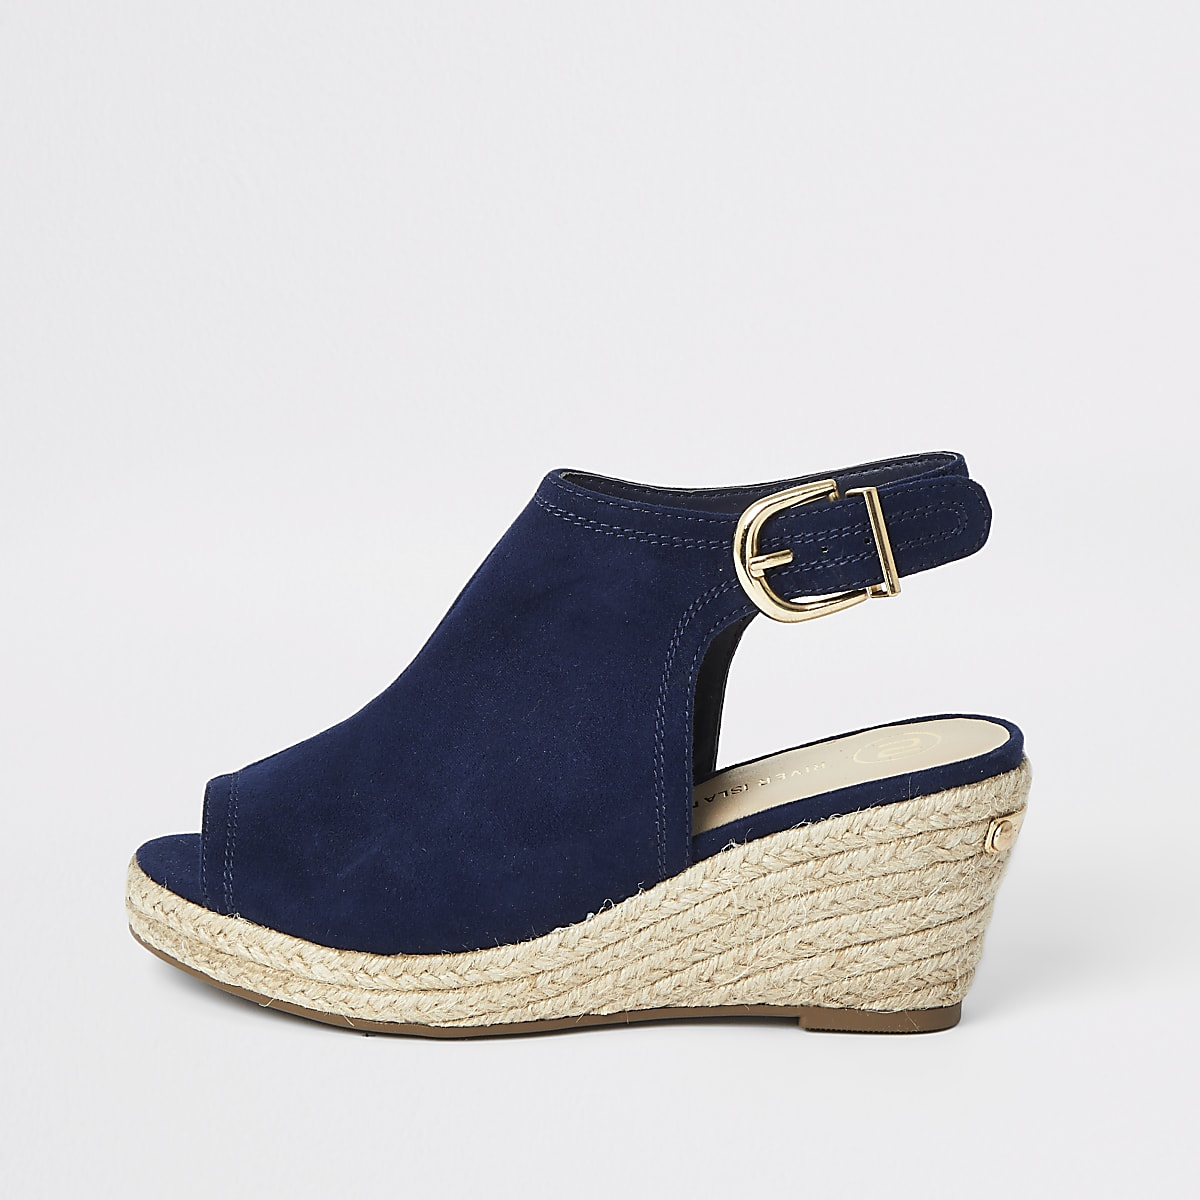 ee6502497b S Navy Espadrille Wedges Shoes Footwear. Blue Illusion Navy Espadrille  Wedges Size ...